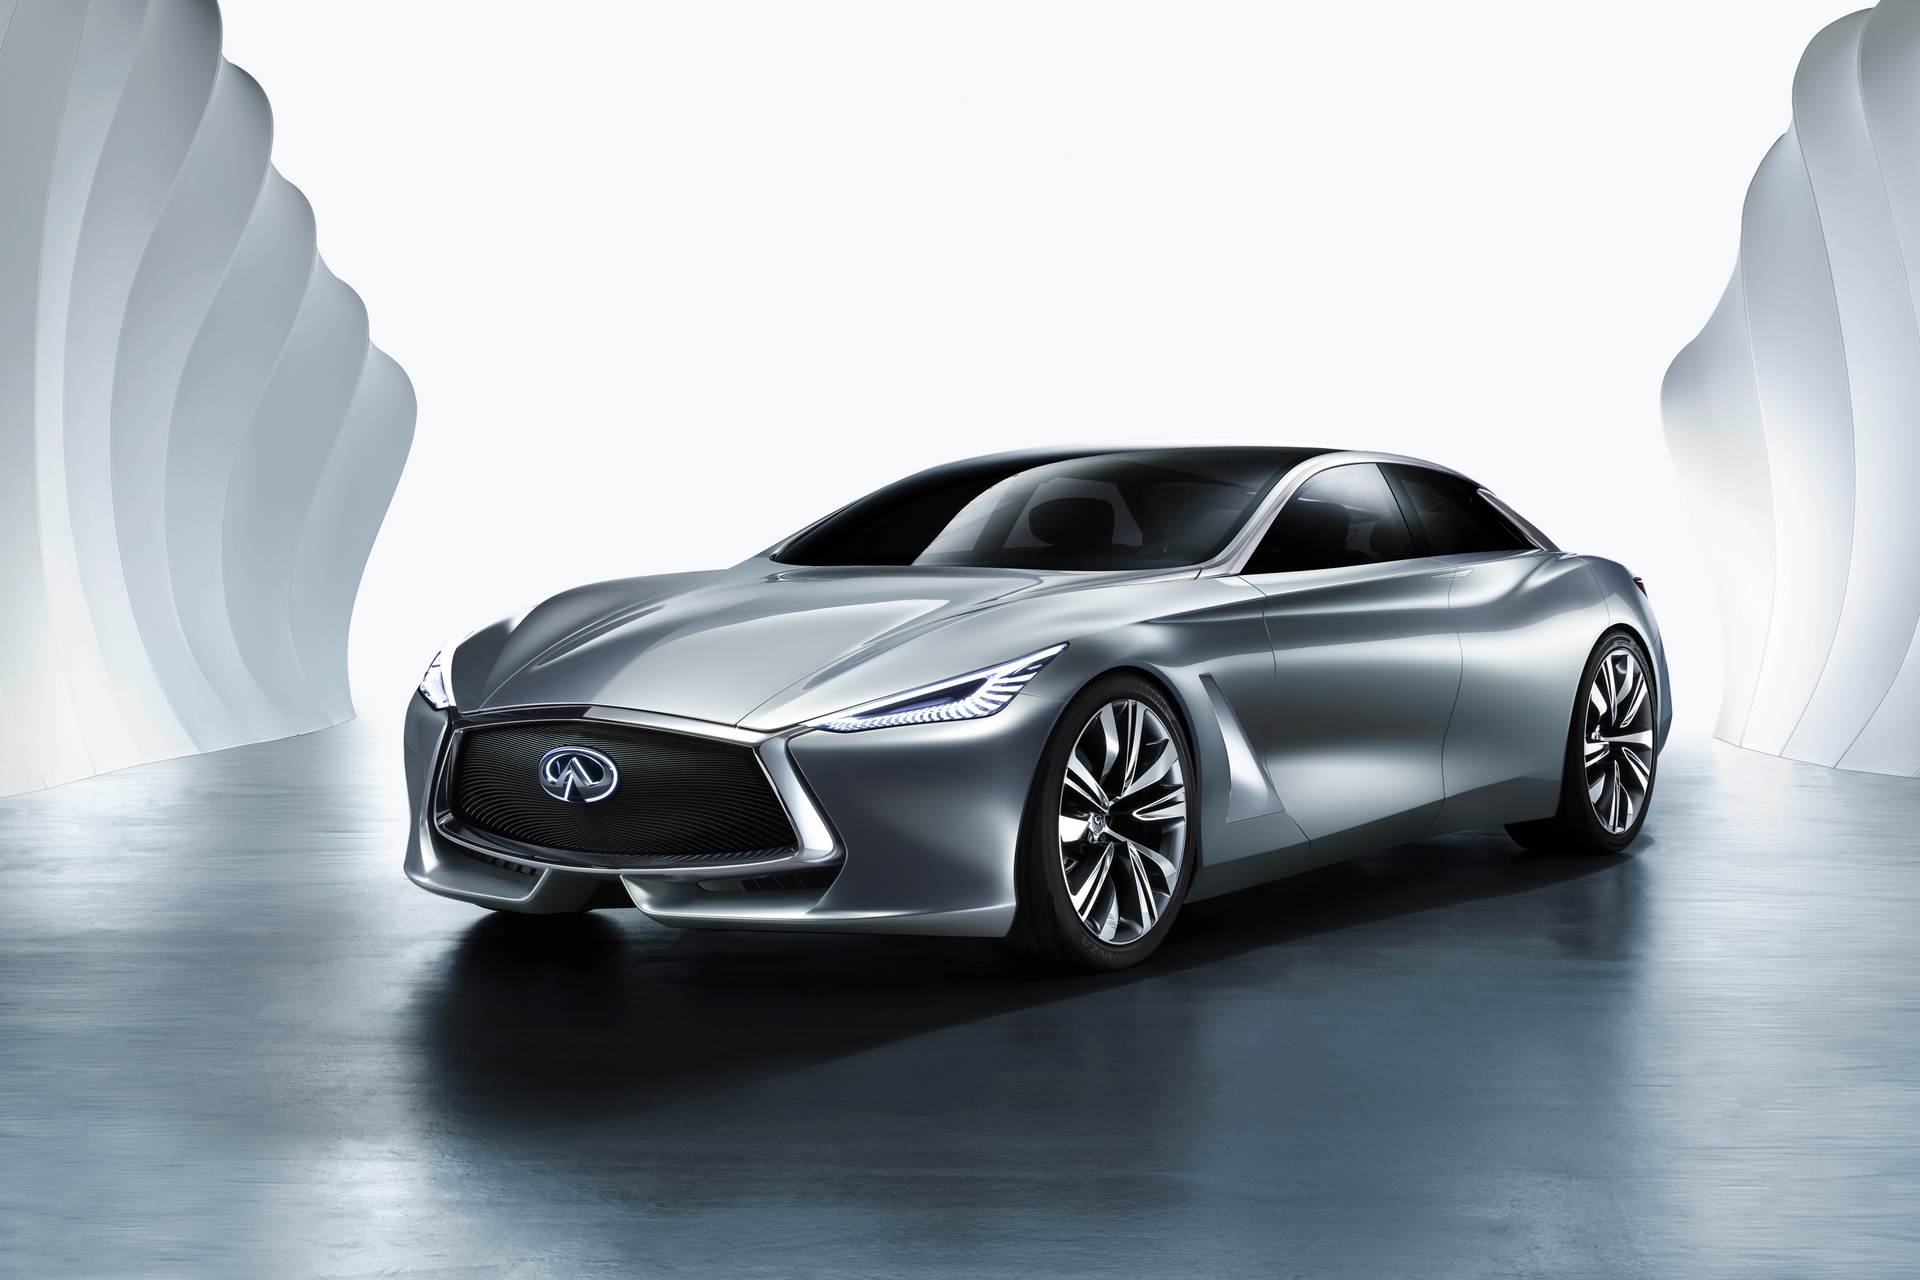 Infiniti Q80 Inspiration © Nissan Motor Co., Ltd.